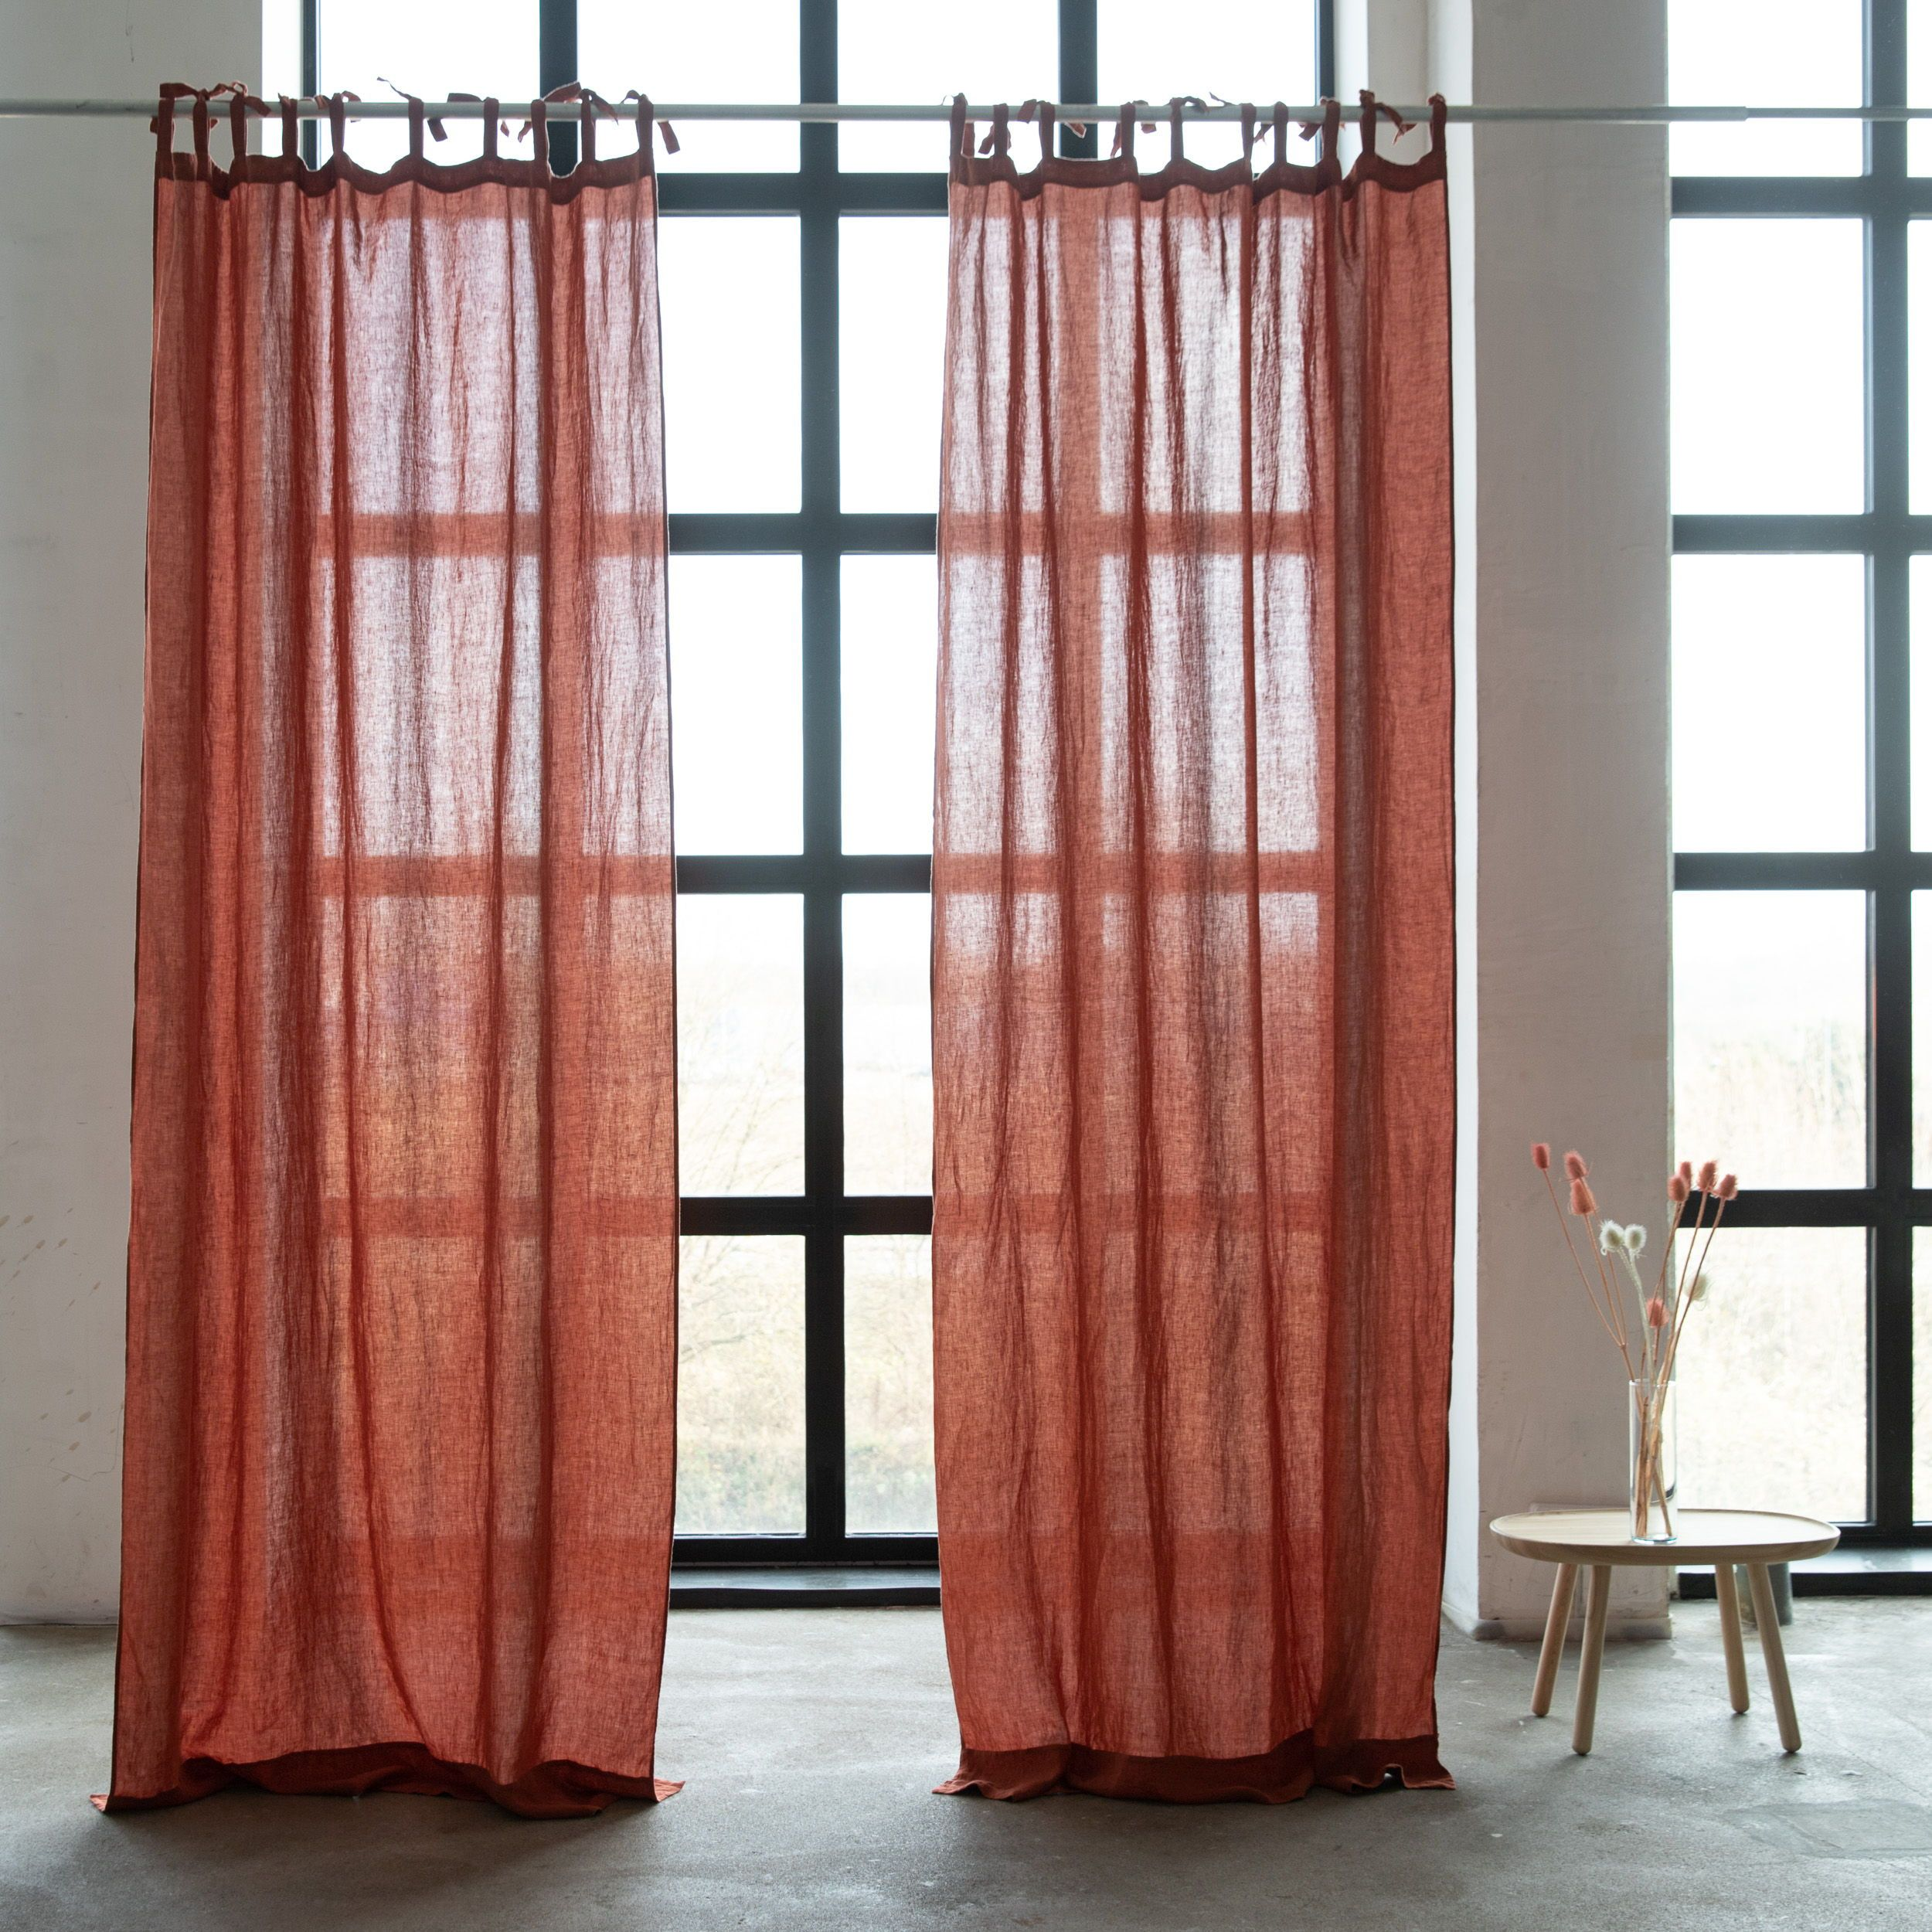 Finest Linen Curtains With Ties Brick Stone Washed Linen Silver In 2020 Curtains Linen Curtains Luxury Linen #silver #curtains #for #living #room